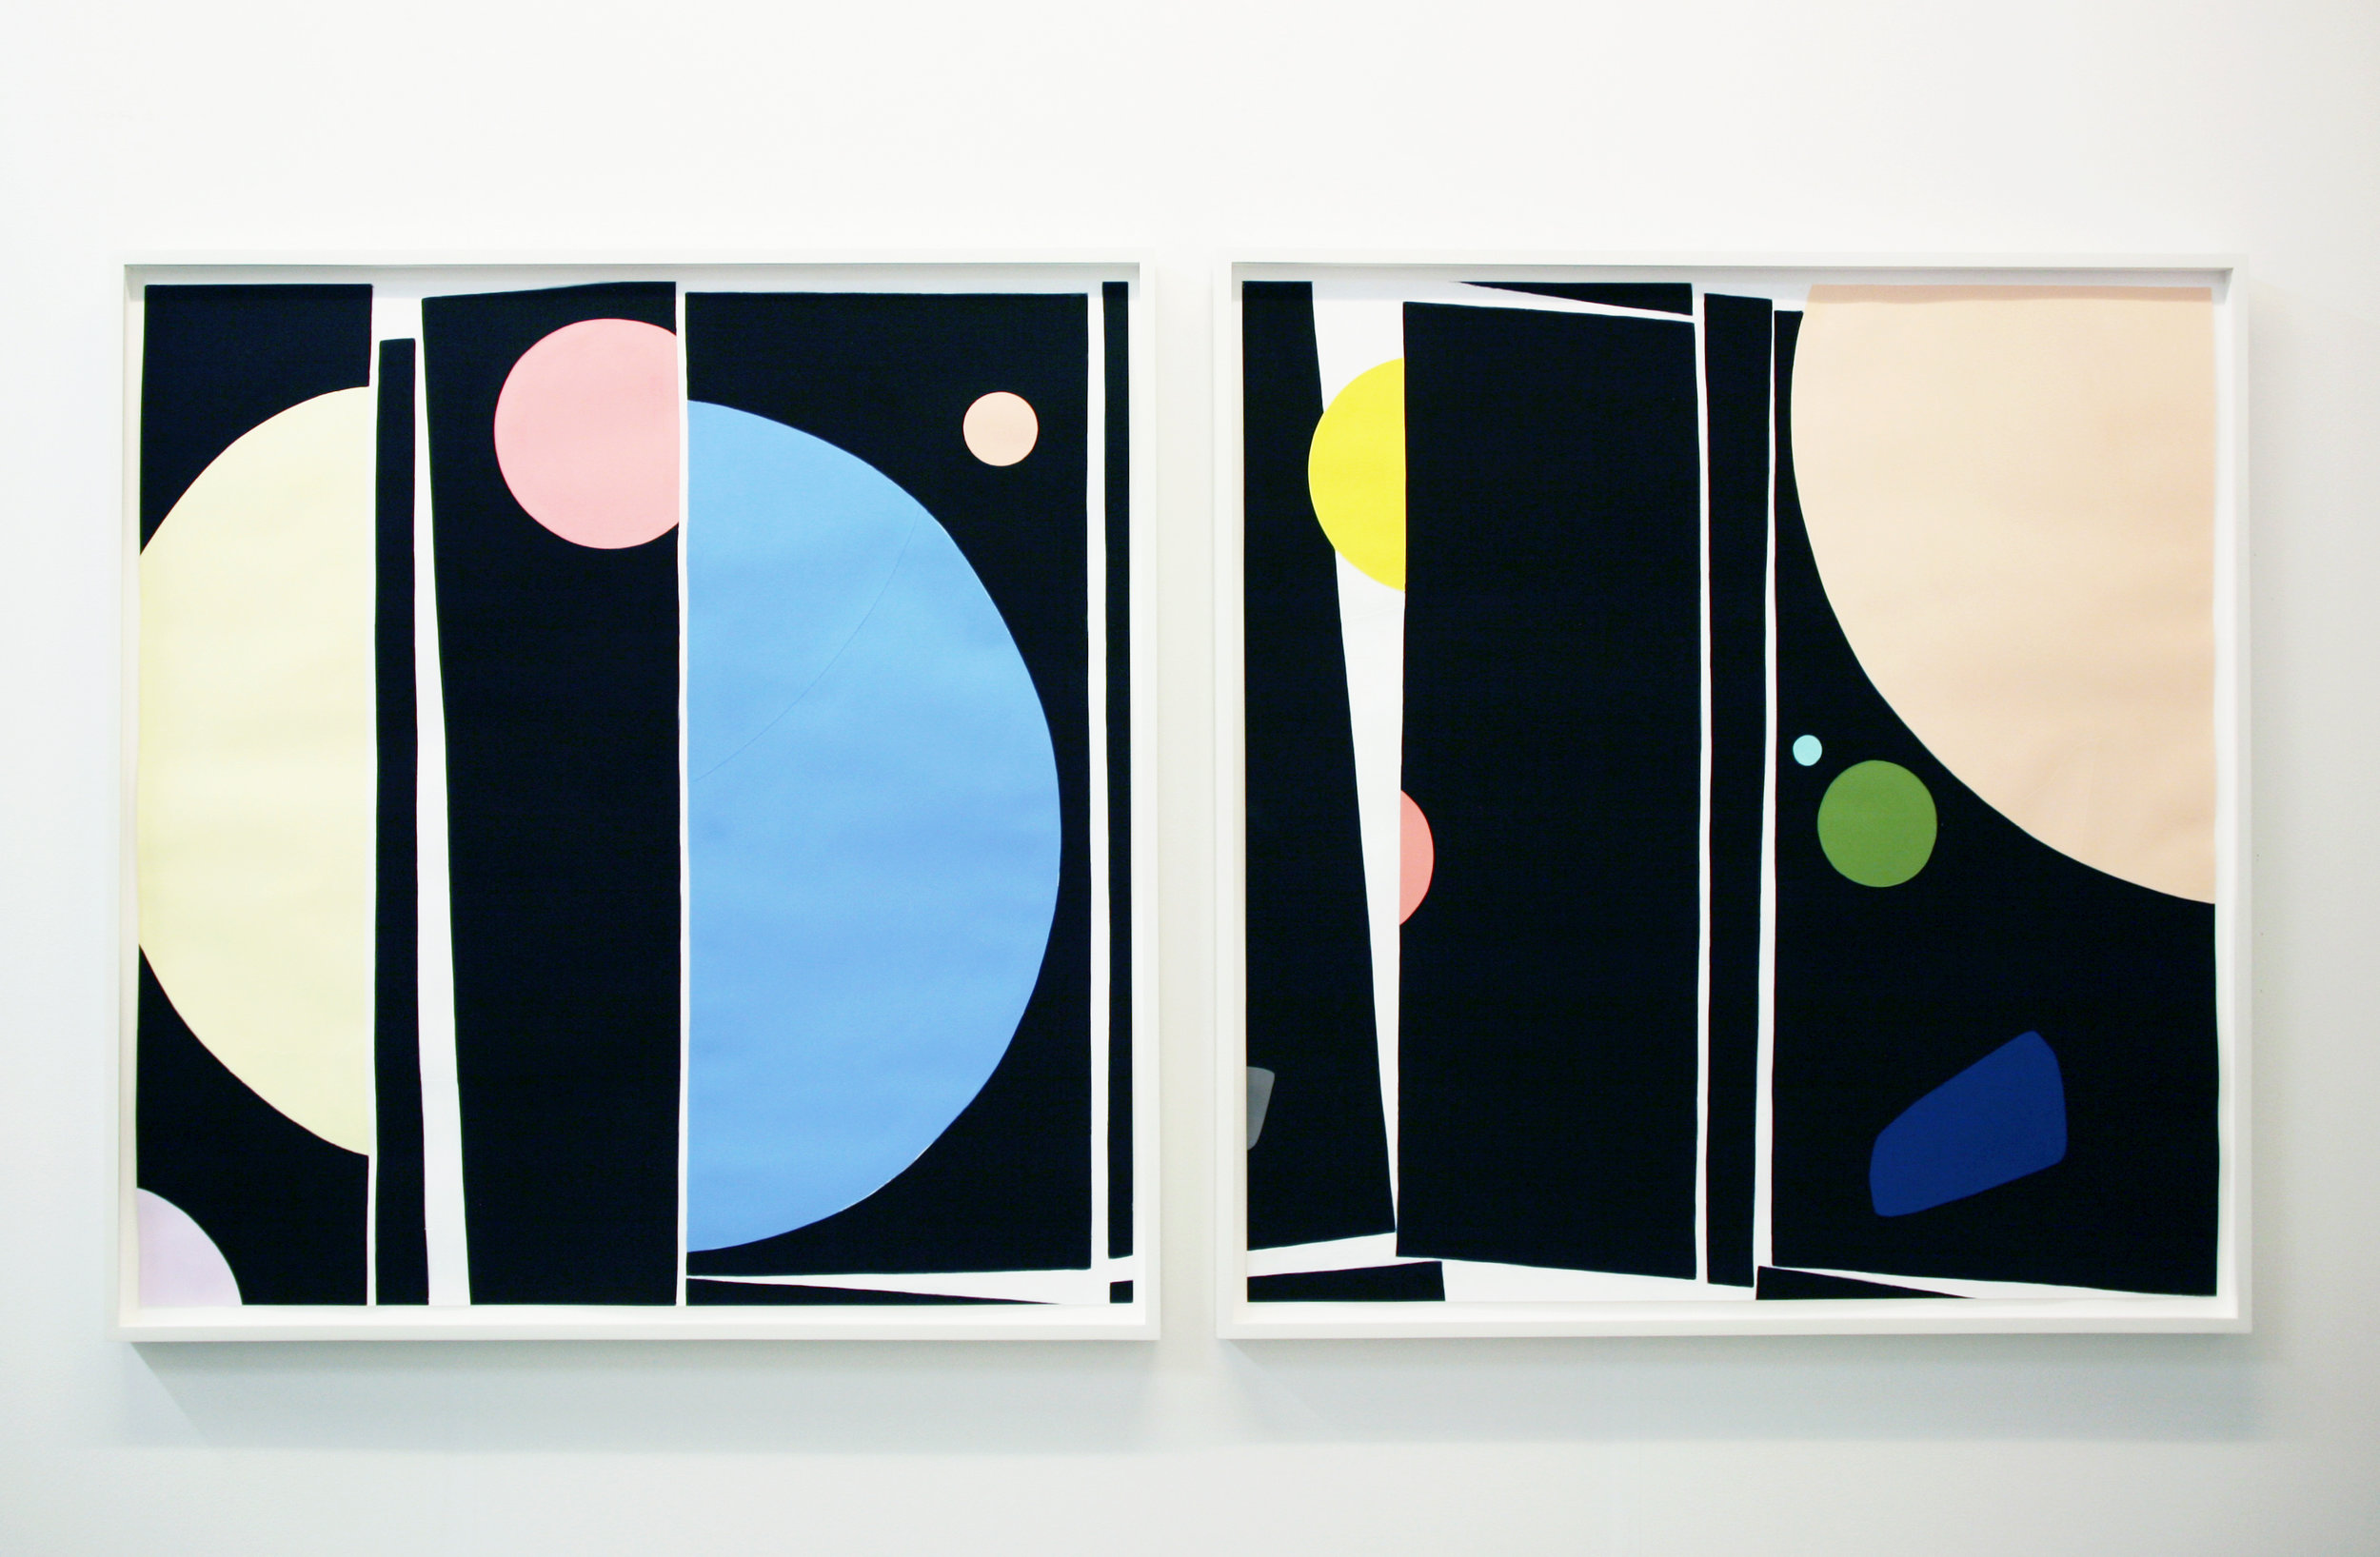 Scott Treleaven   In Whatever Way Tames Whomsoever  2017 Gouache, acrylic and panel collage on paper 105,5 x 105,5 cm each. Diptych